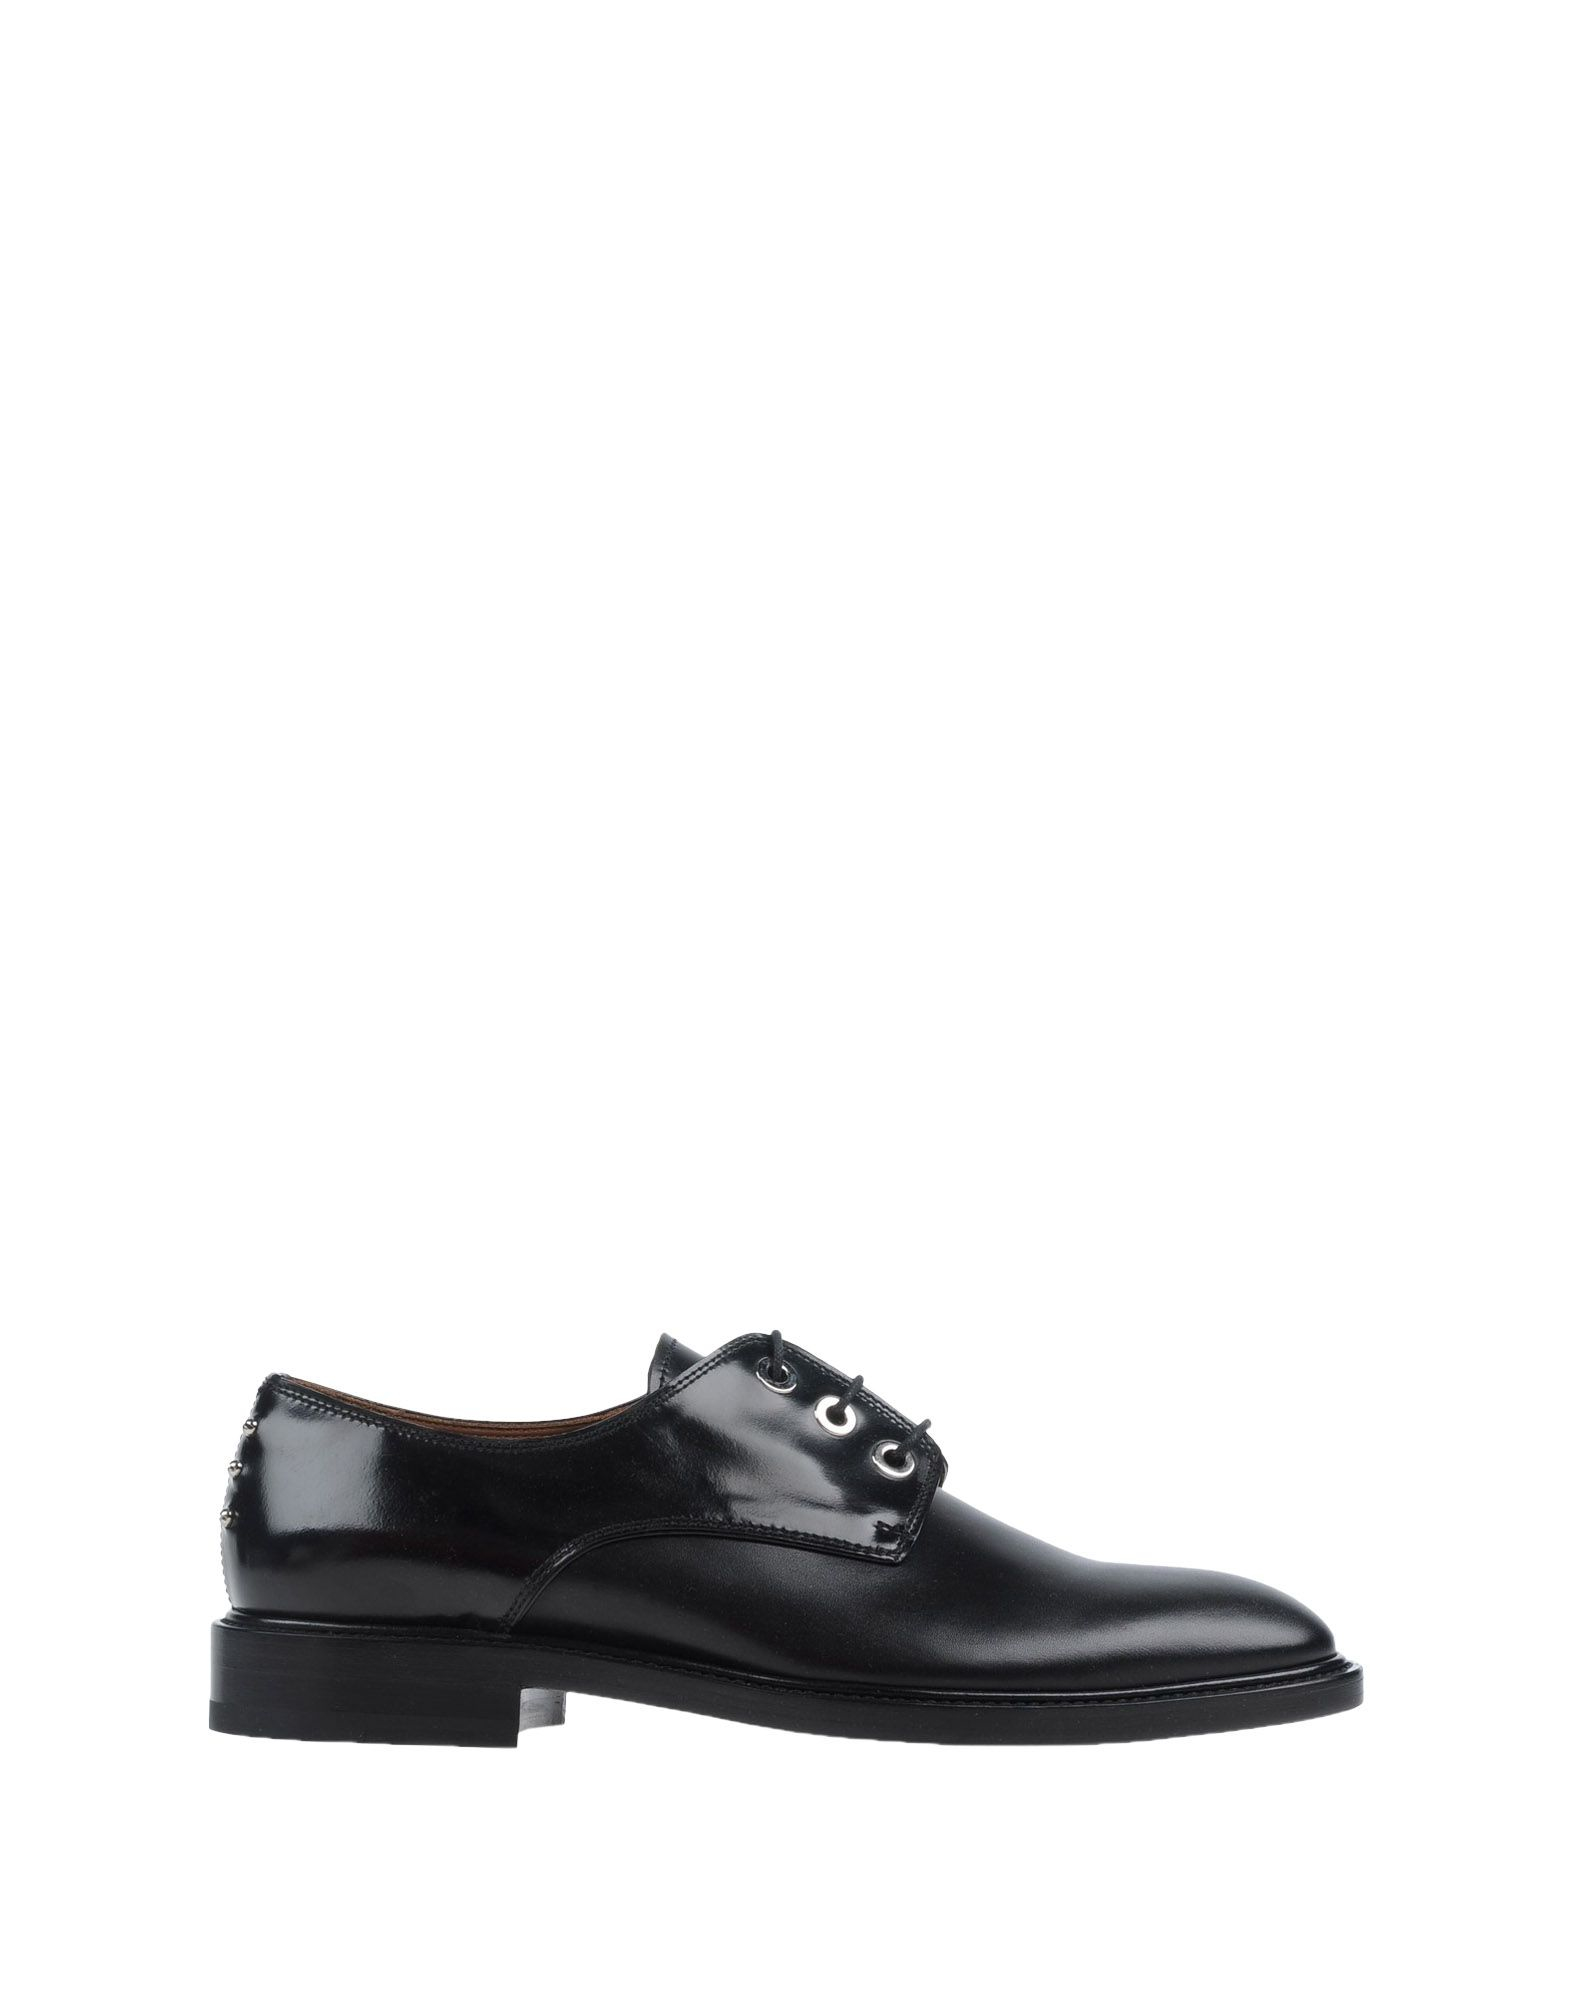 givenchy leather studded derby shoes in black for lyst